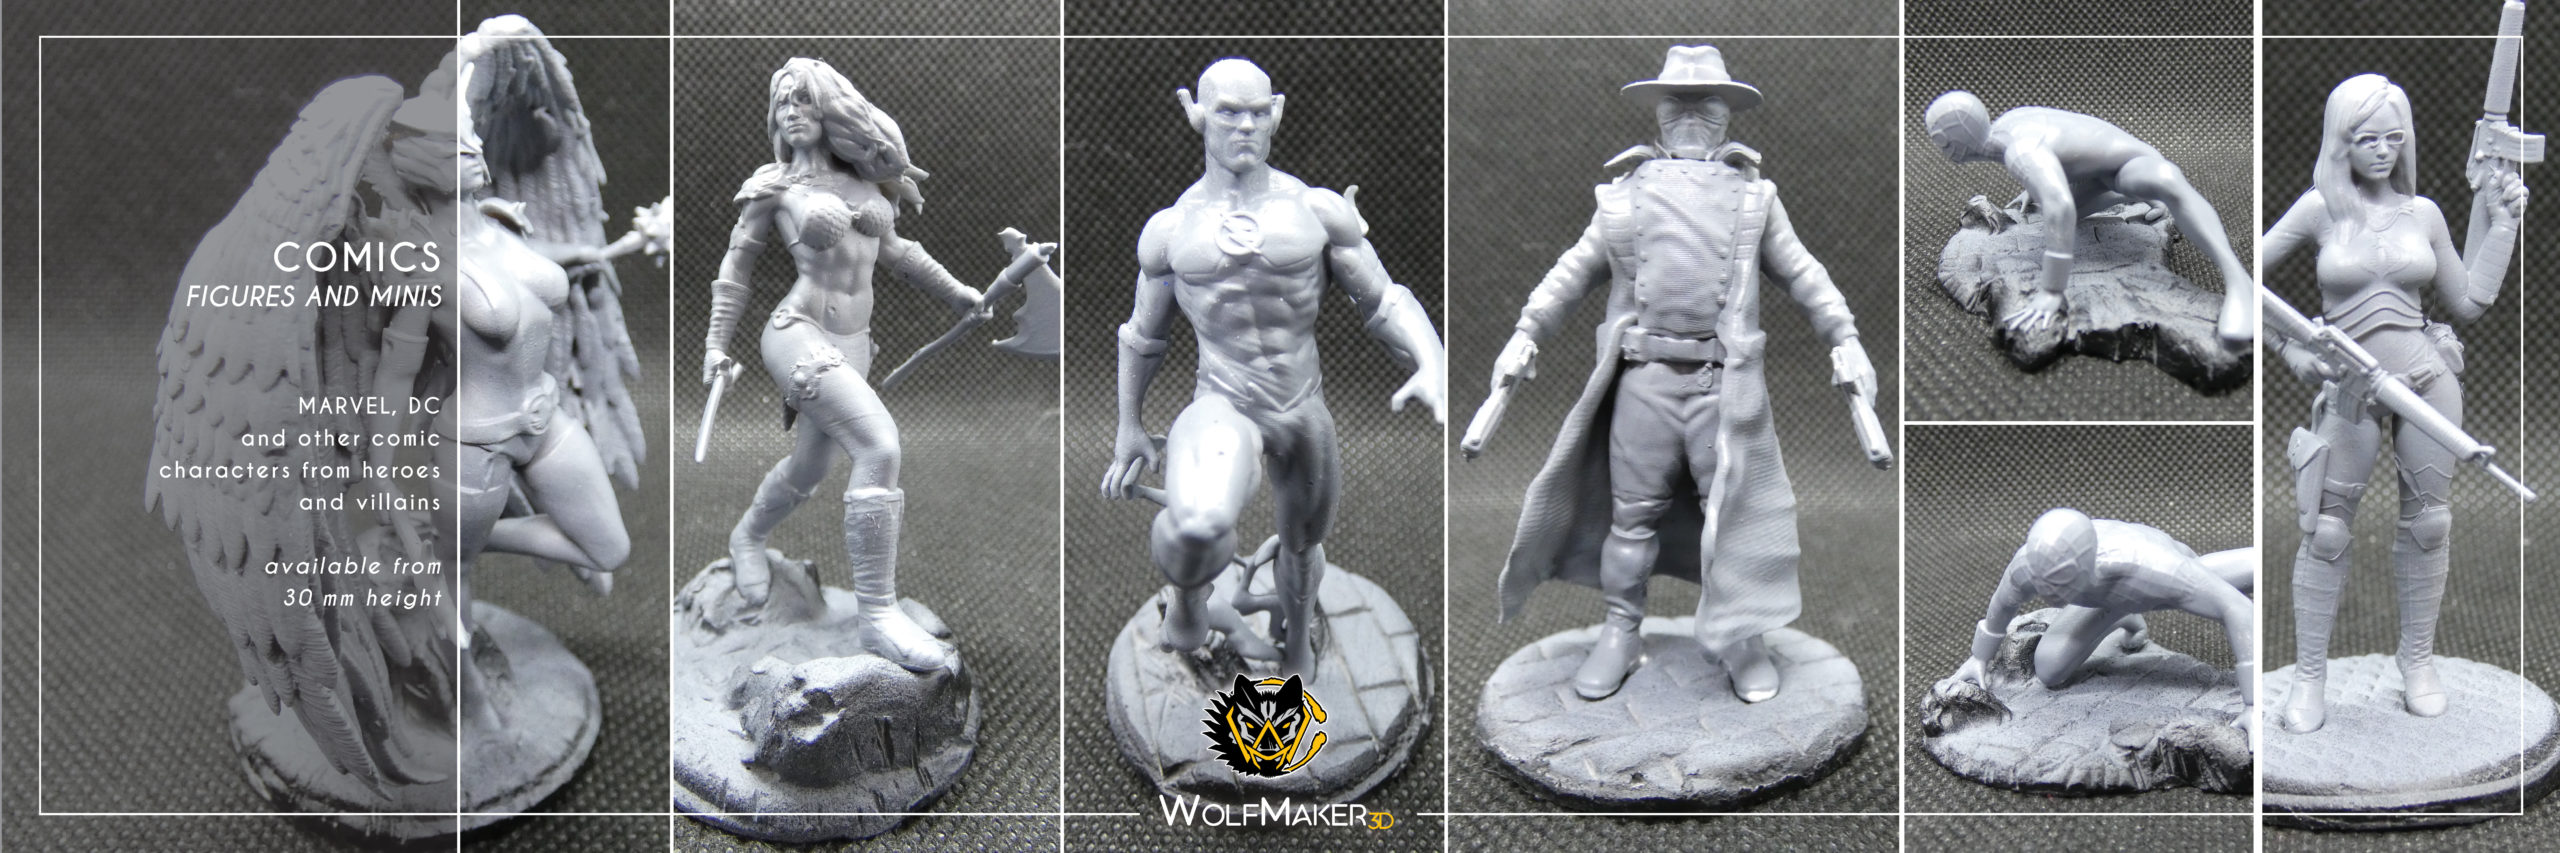 Marvel and Dc comic characters 3d miniatures printed